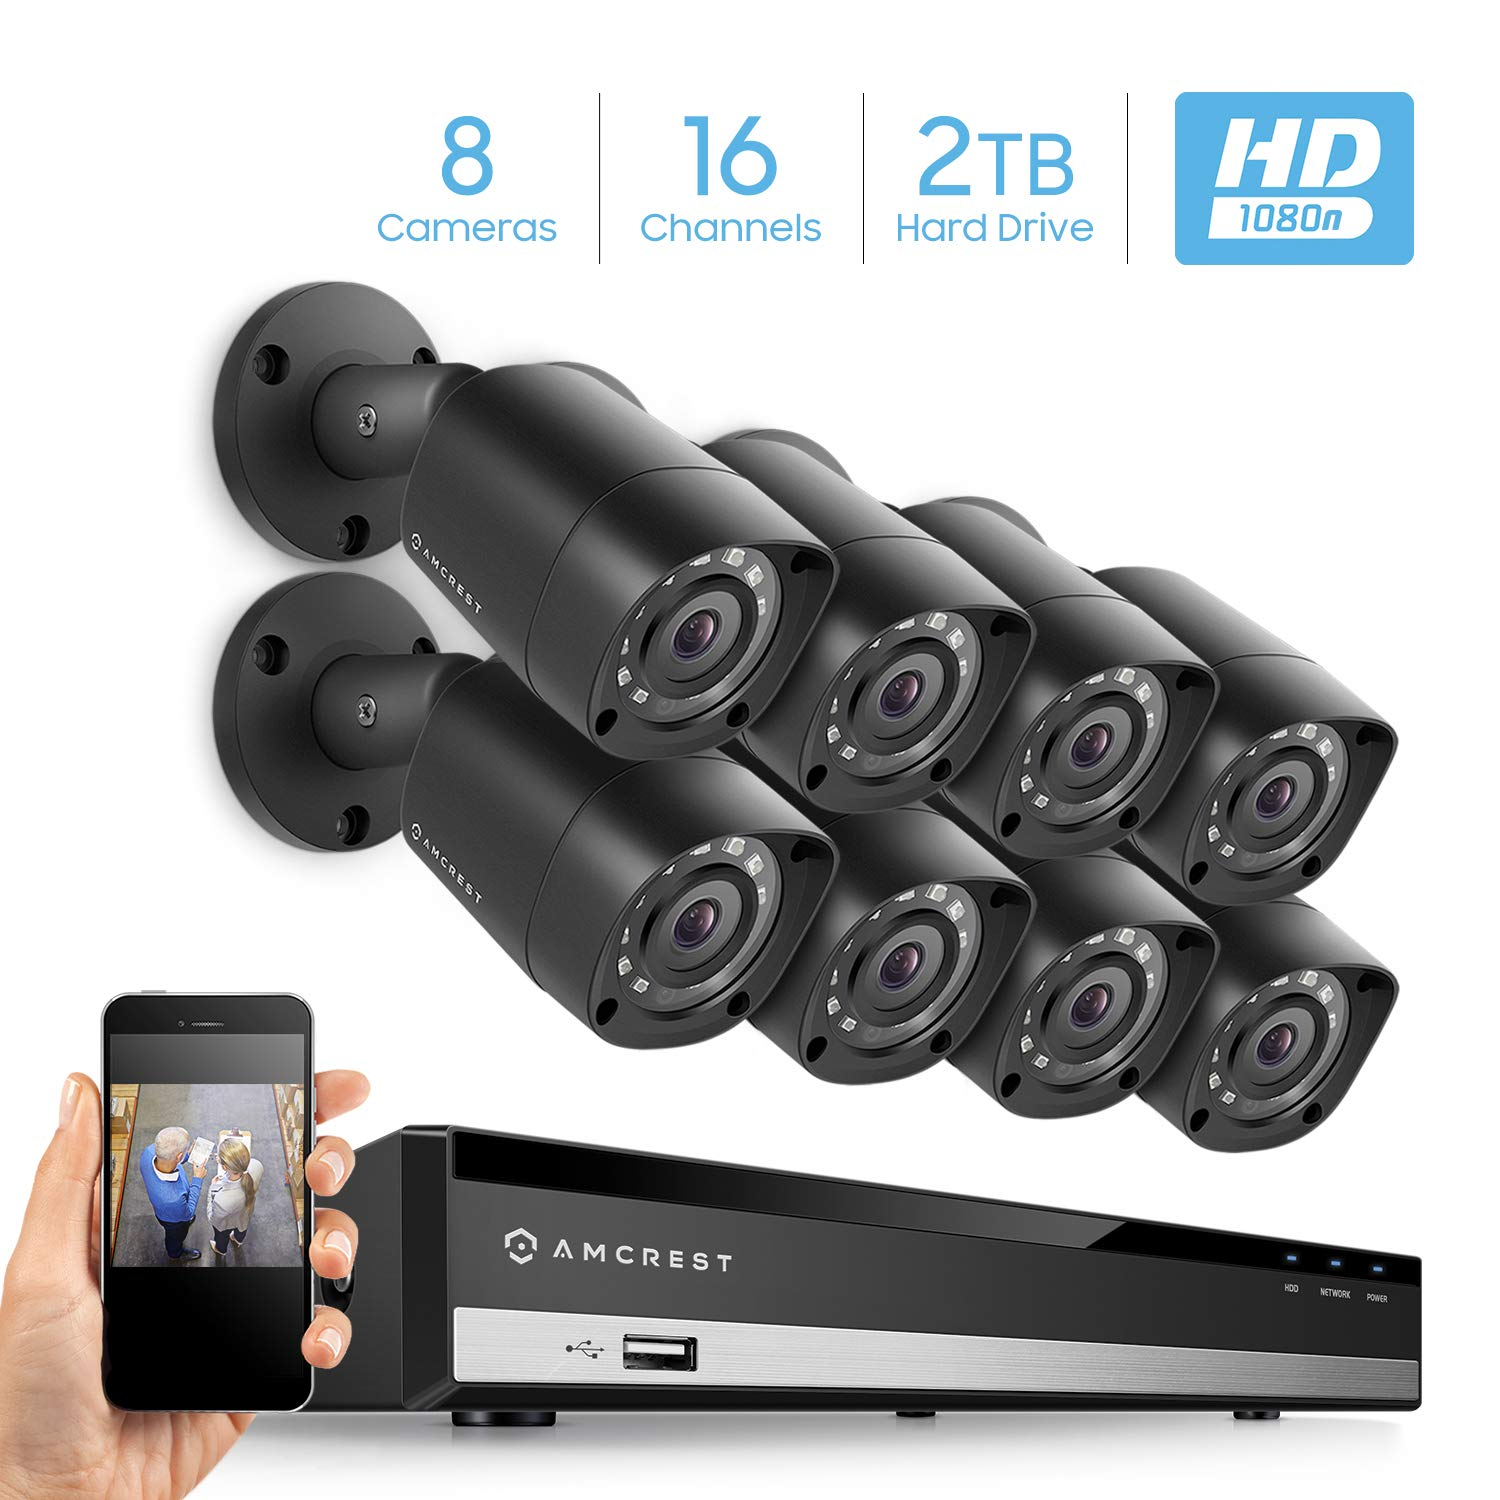 Amcrest HD 1080-Lite 16CH Video Security System w 8 x 1MP IP67 Outdoor Cameras, 65ft Night Vision, Pre-Installed 2TB HDD, Supports AHD, CVI, TVI, Analog, Amcrest IP Cameras AMDVTENL16-8B-B-2TB